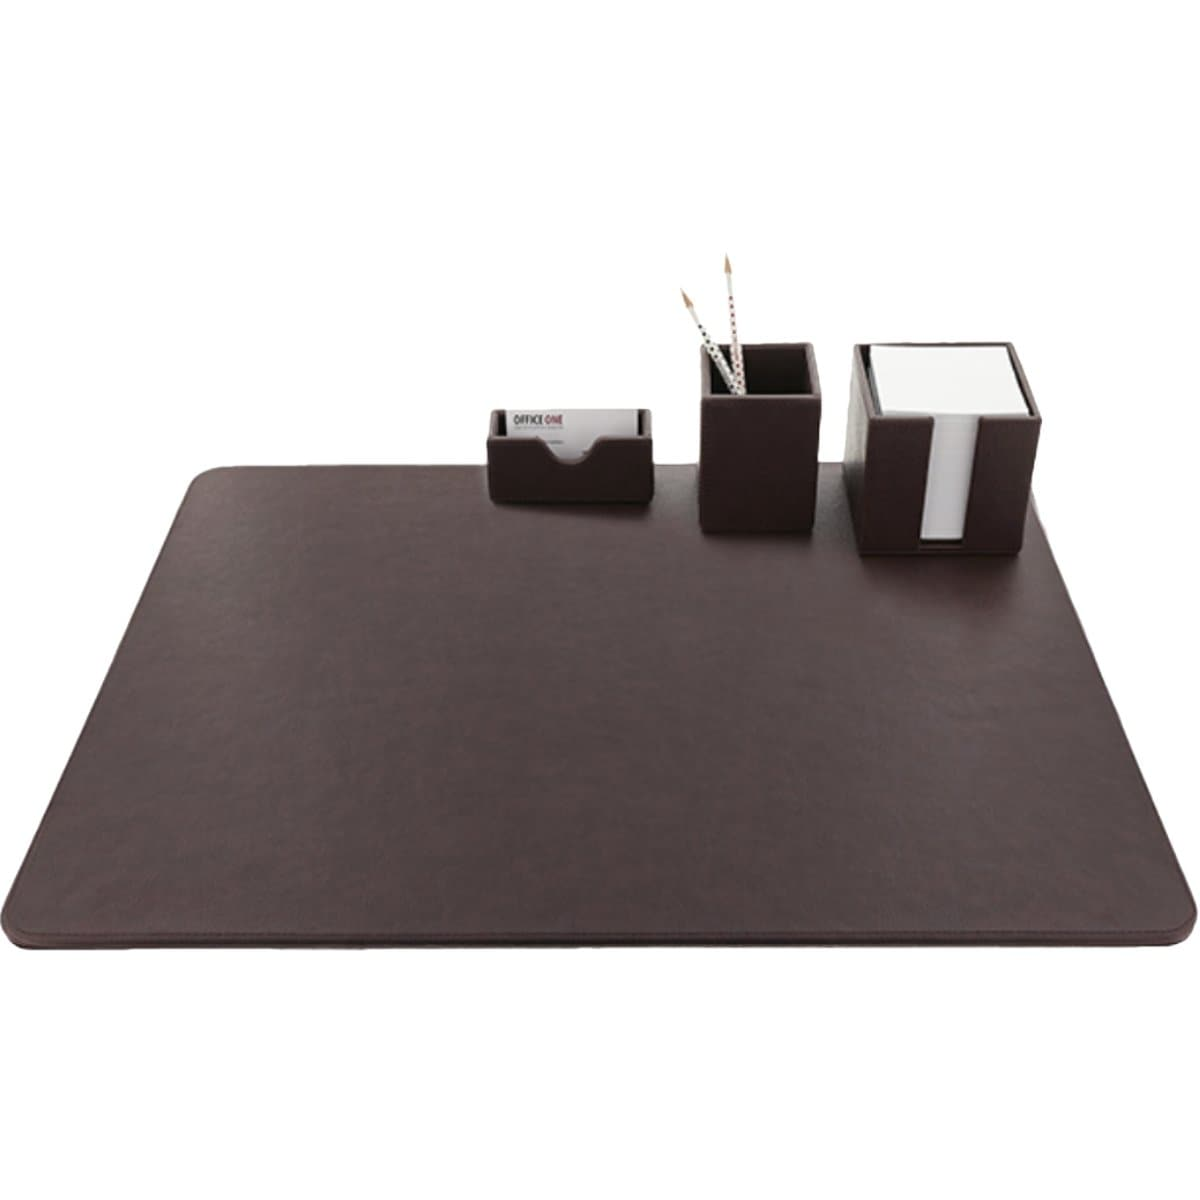 Konrad S. Desk Set, PU Leather, Brown